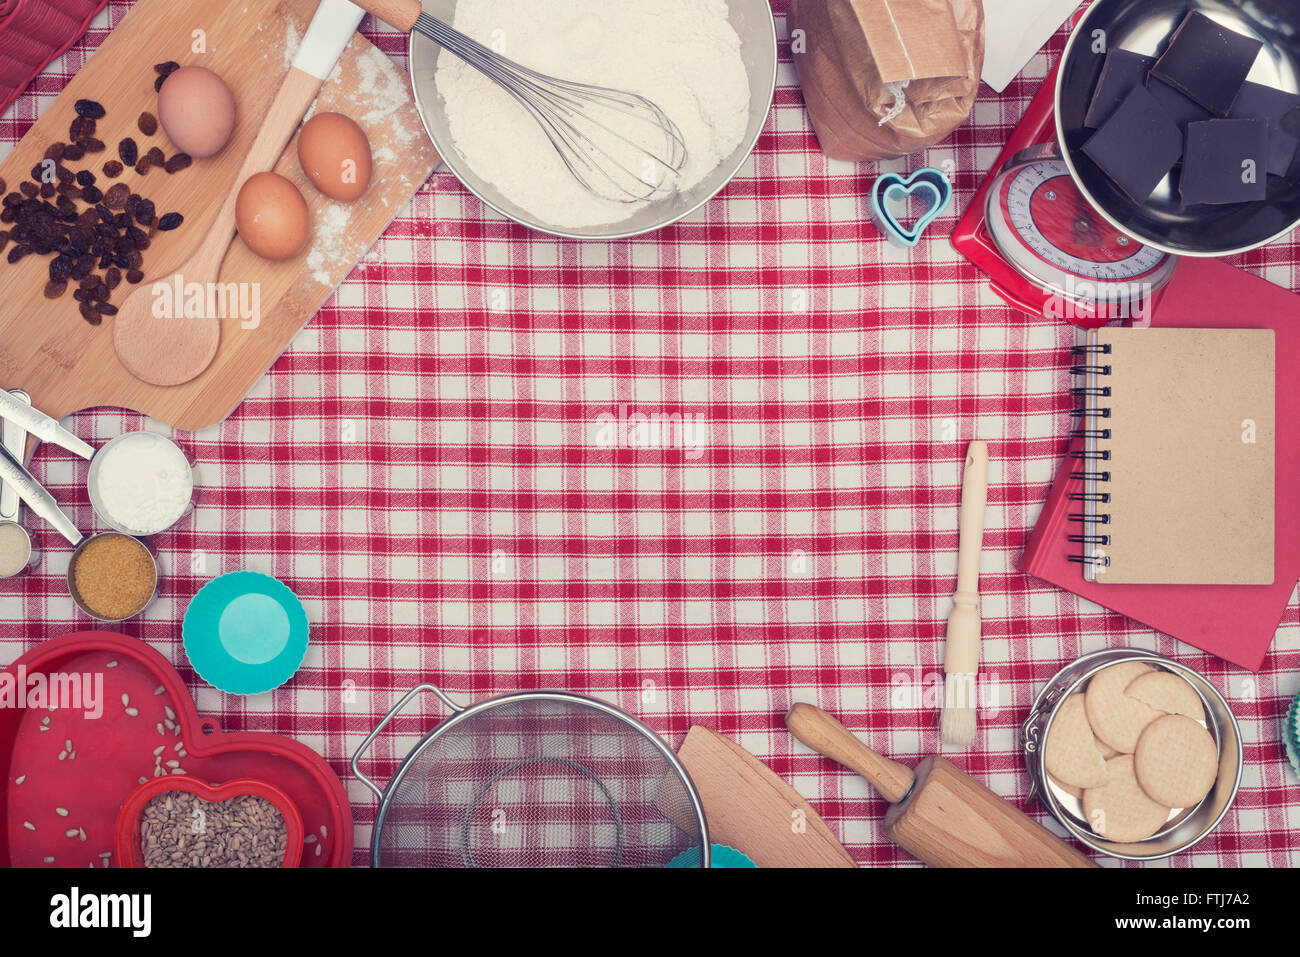 Home cooking baking header - Stock Image